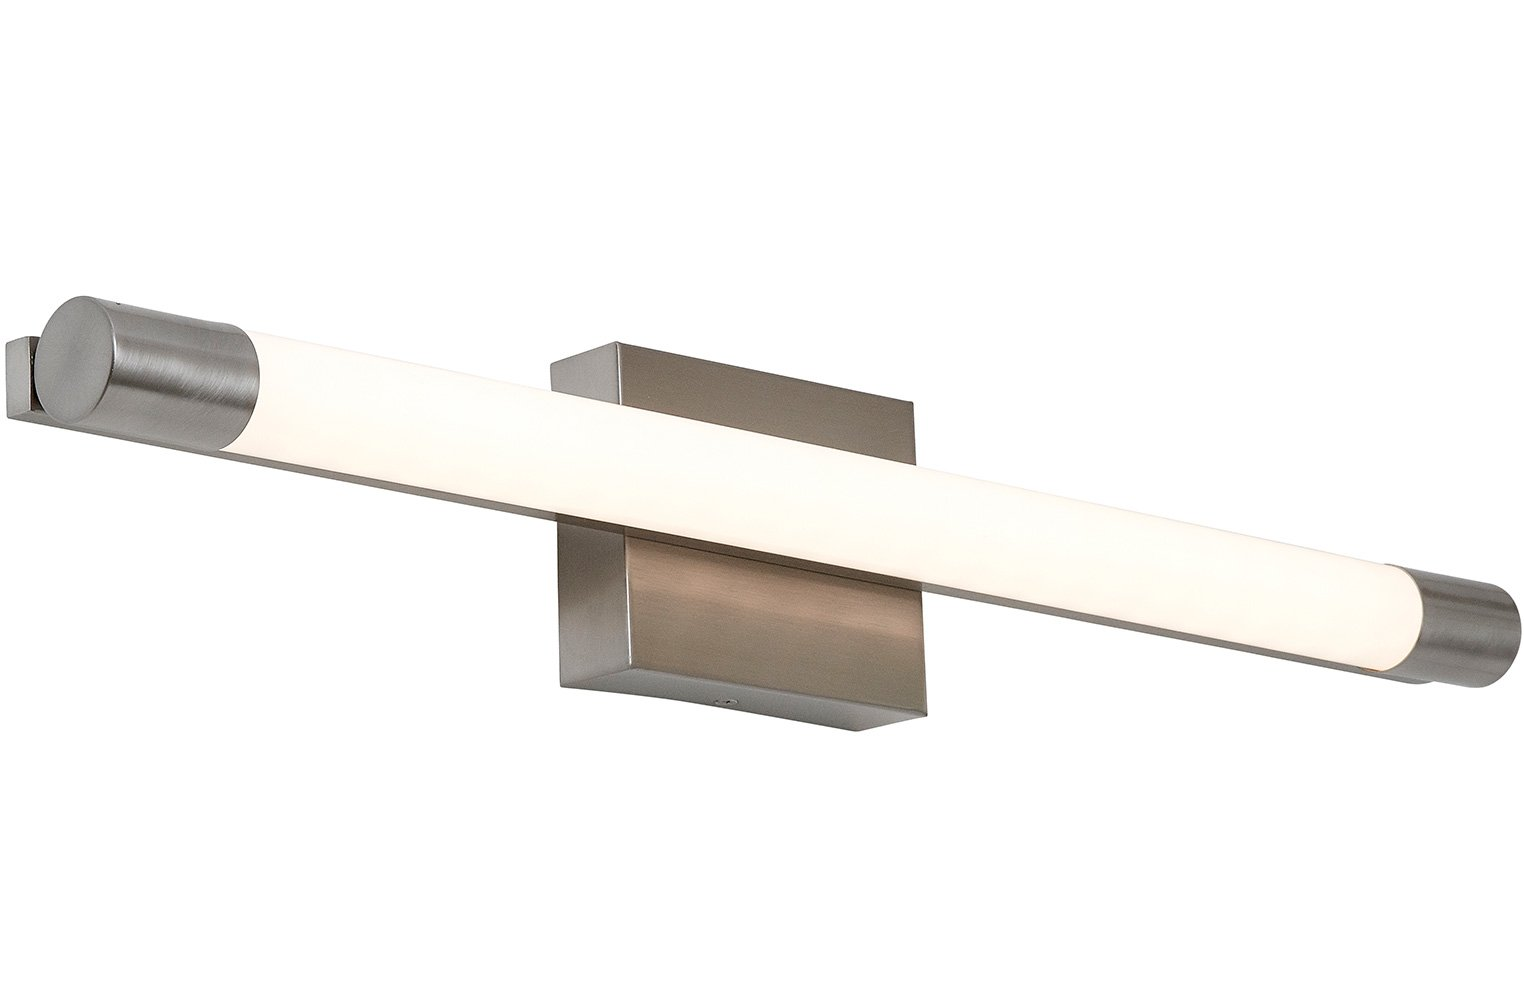 Firstlight Slimline Led Bathroom Wall Light In White: New Slim Line Modern Frosted Bathroom Vanity Light Fixture